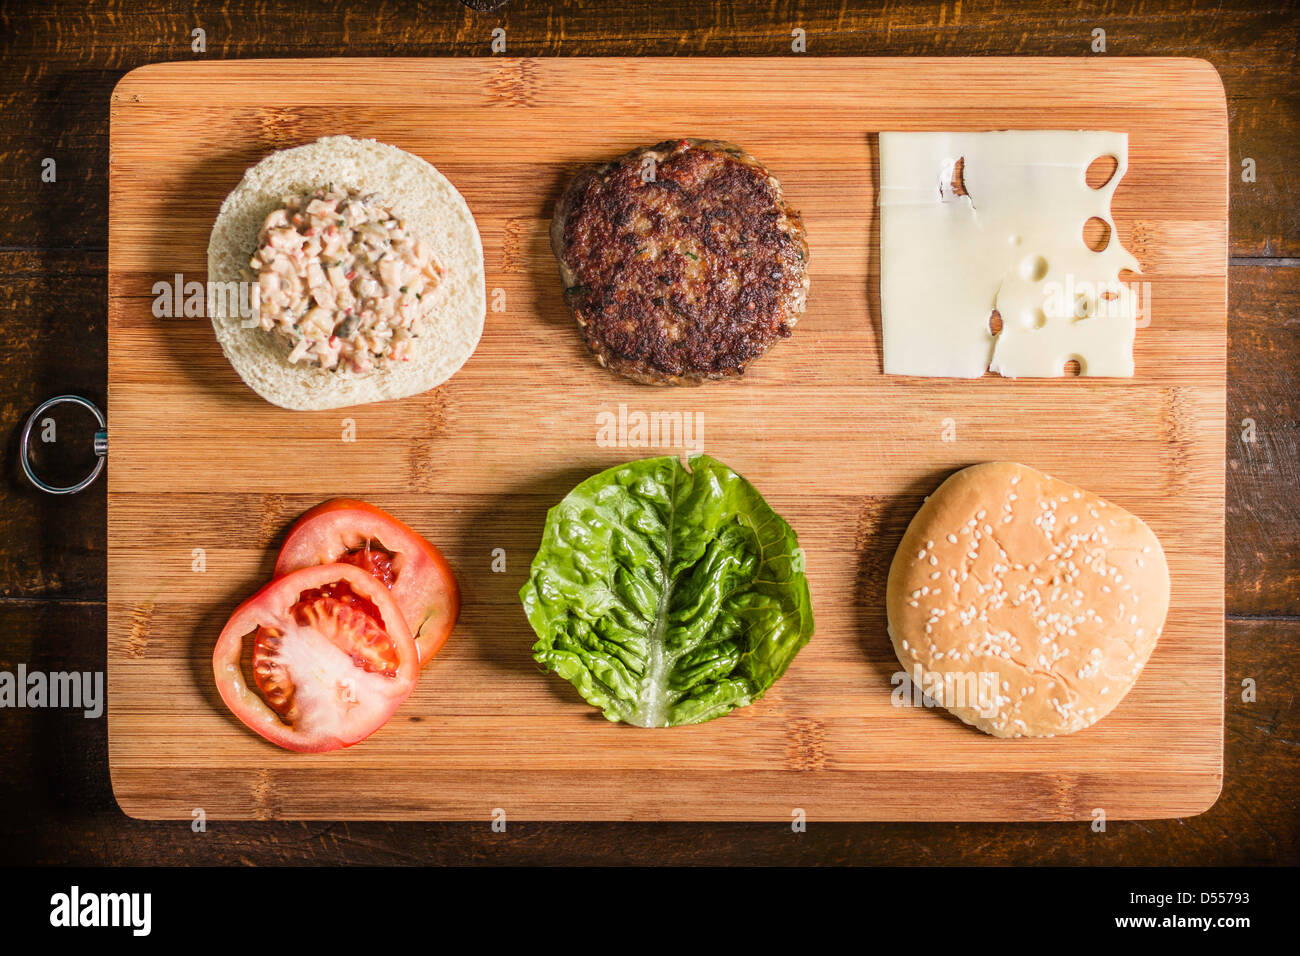 Table with hamburger and condiments - Stock Image